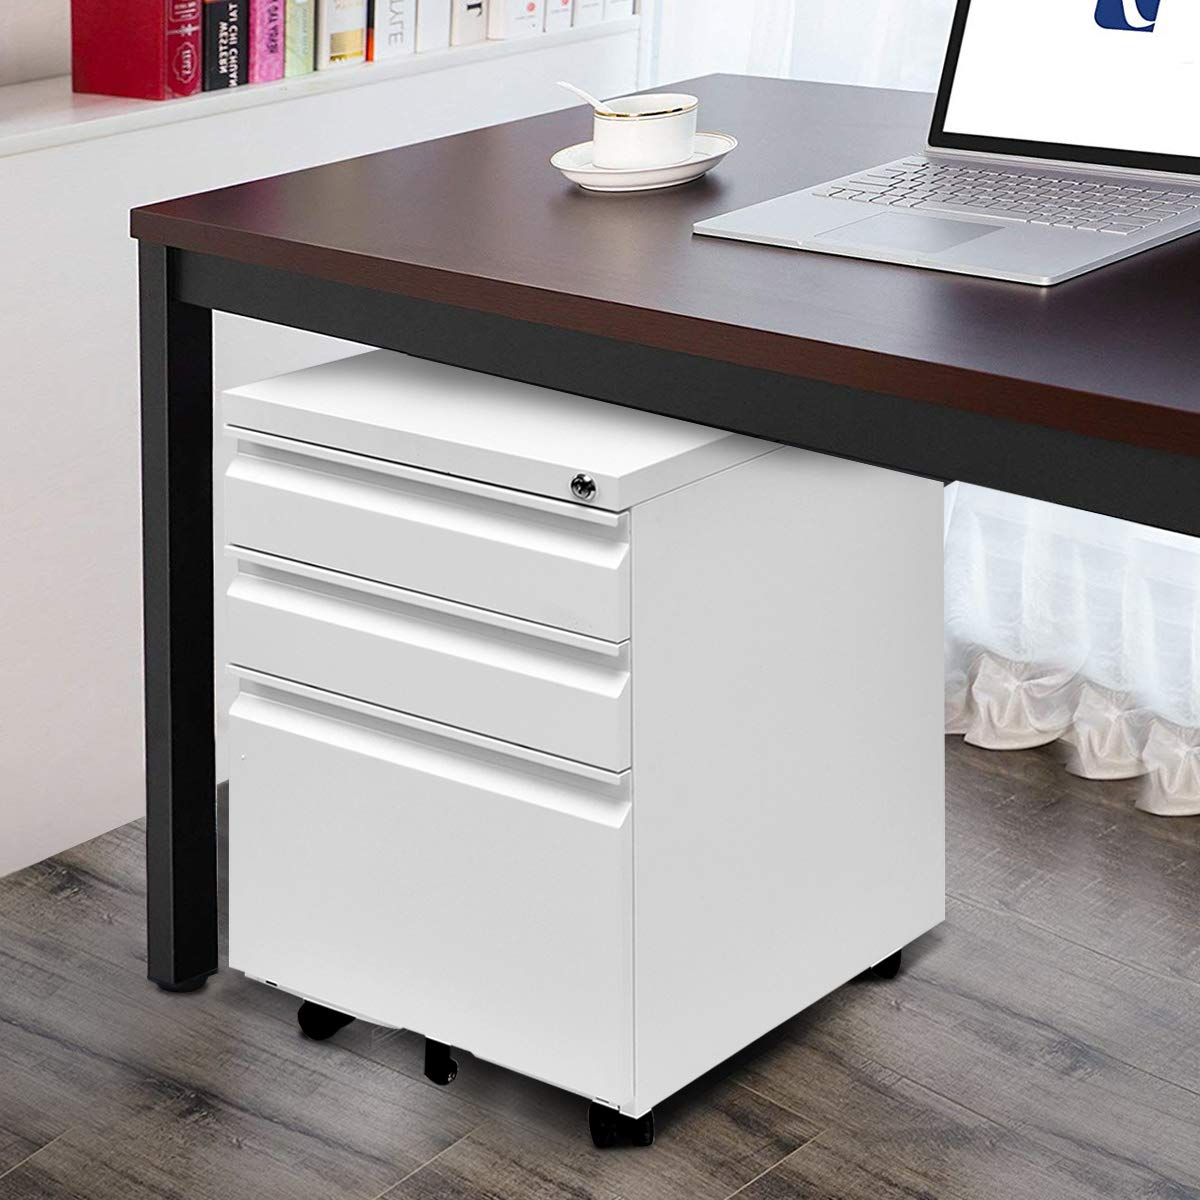 Giantex Rolling Mobile File W/3 Lockable Drawers and Pedestal for Office Study Room Home Steel Storage Cabinet (White) by Giantex (Image #1)